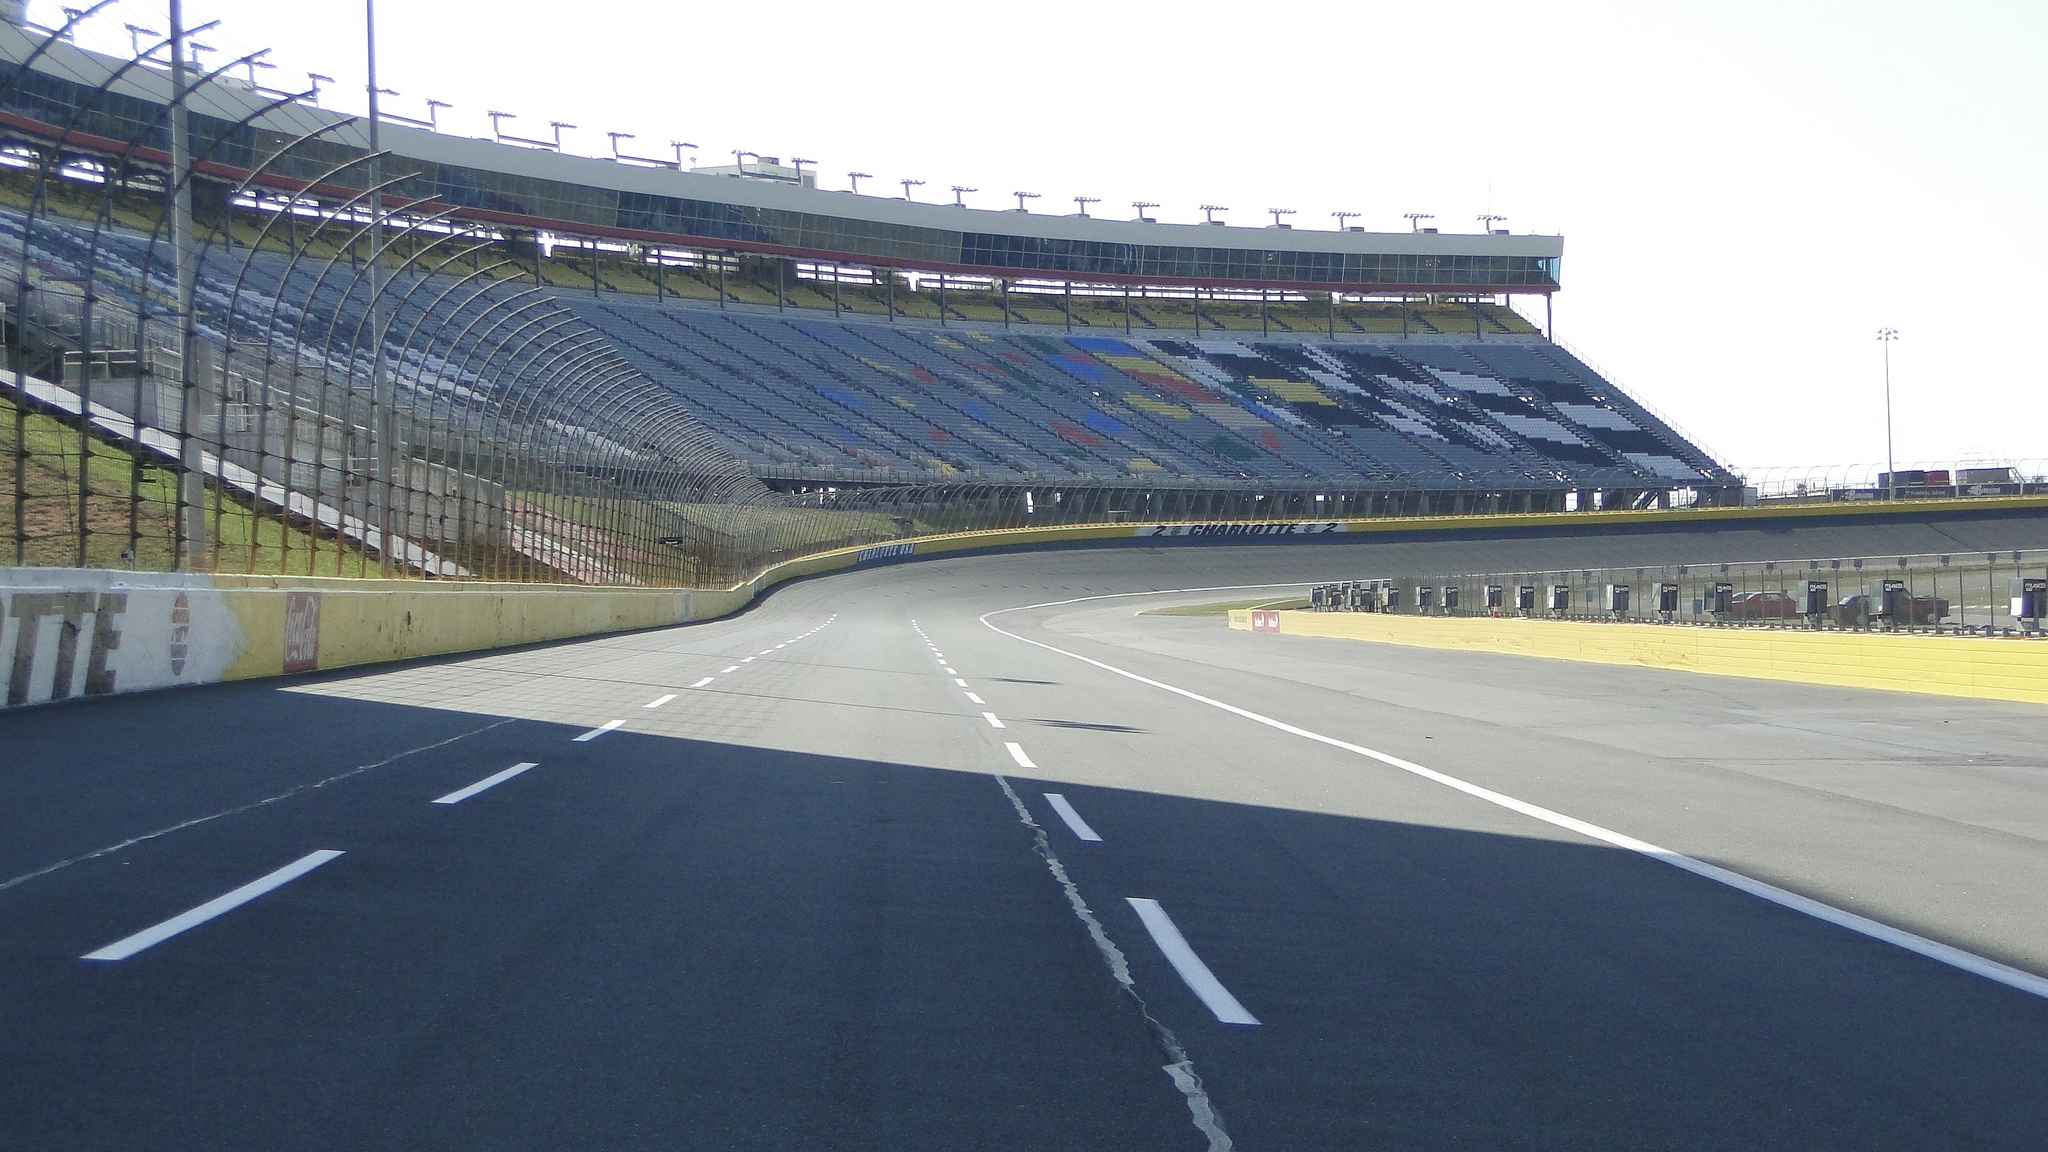 Carolina Motorsports Park >> 3 Best Race Tracks in North Carolina - The News Wheel